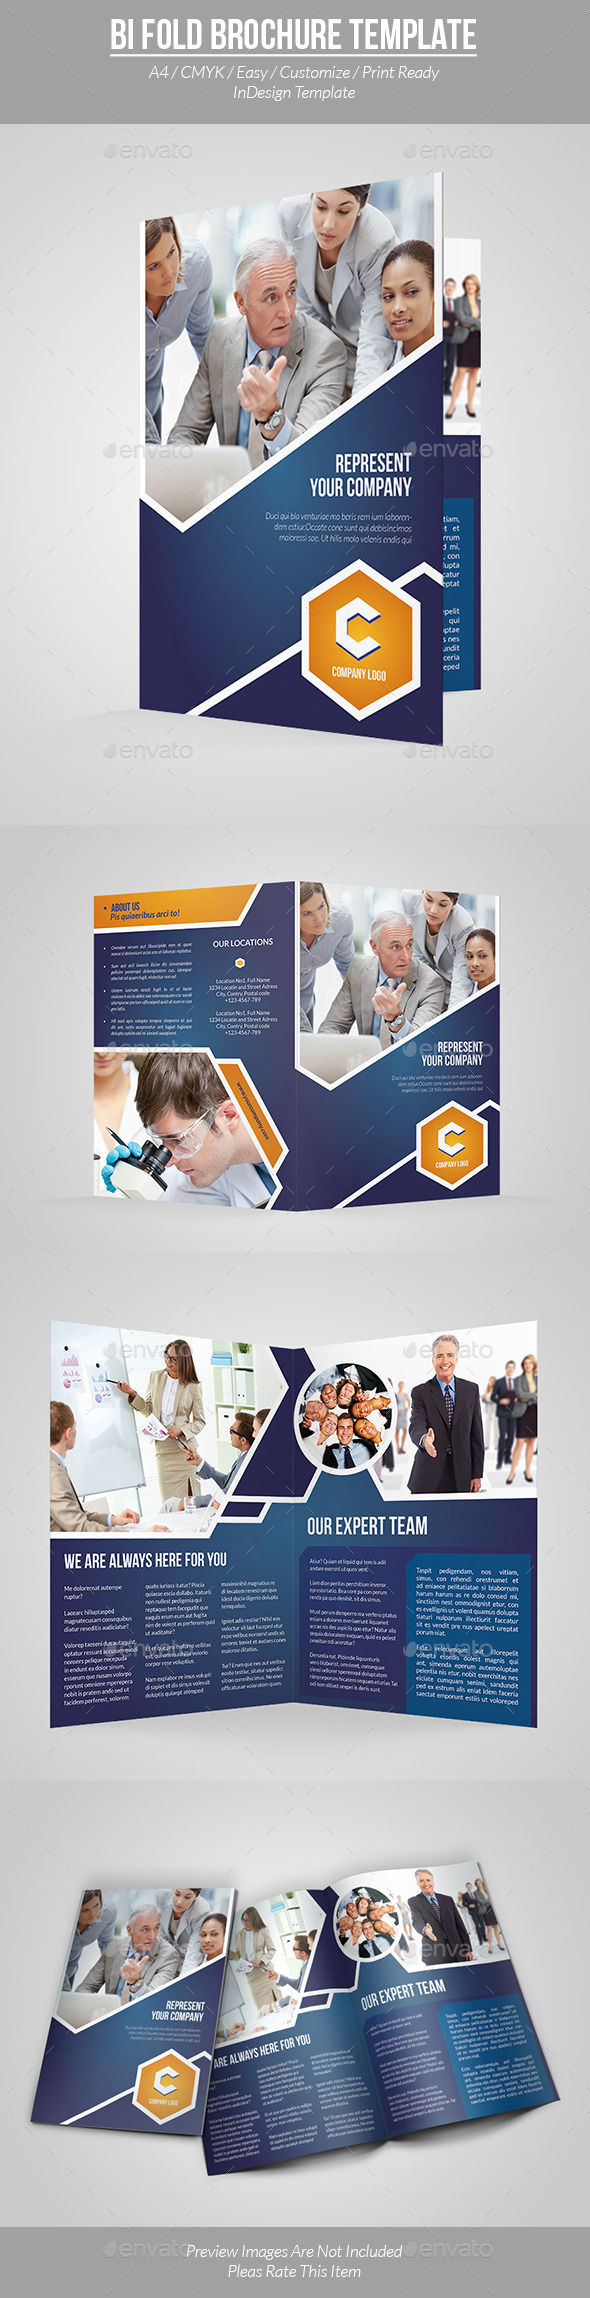 Bi Fold Brochure Template - Informational Brochures